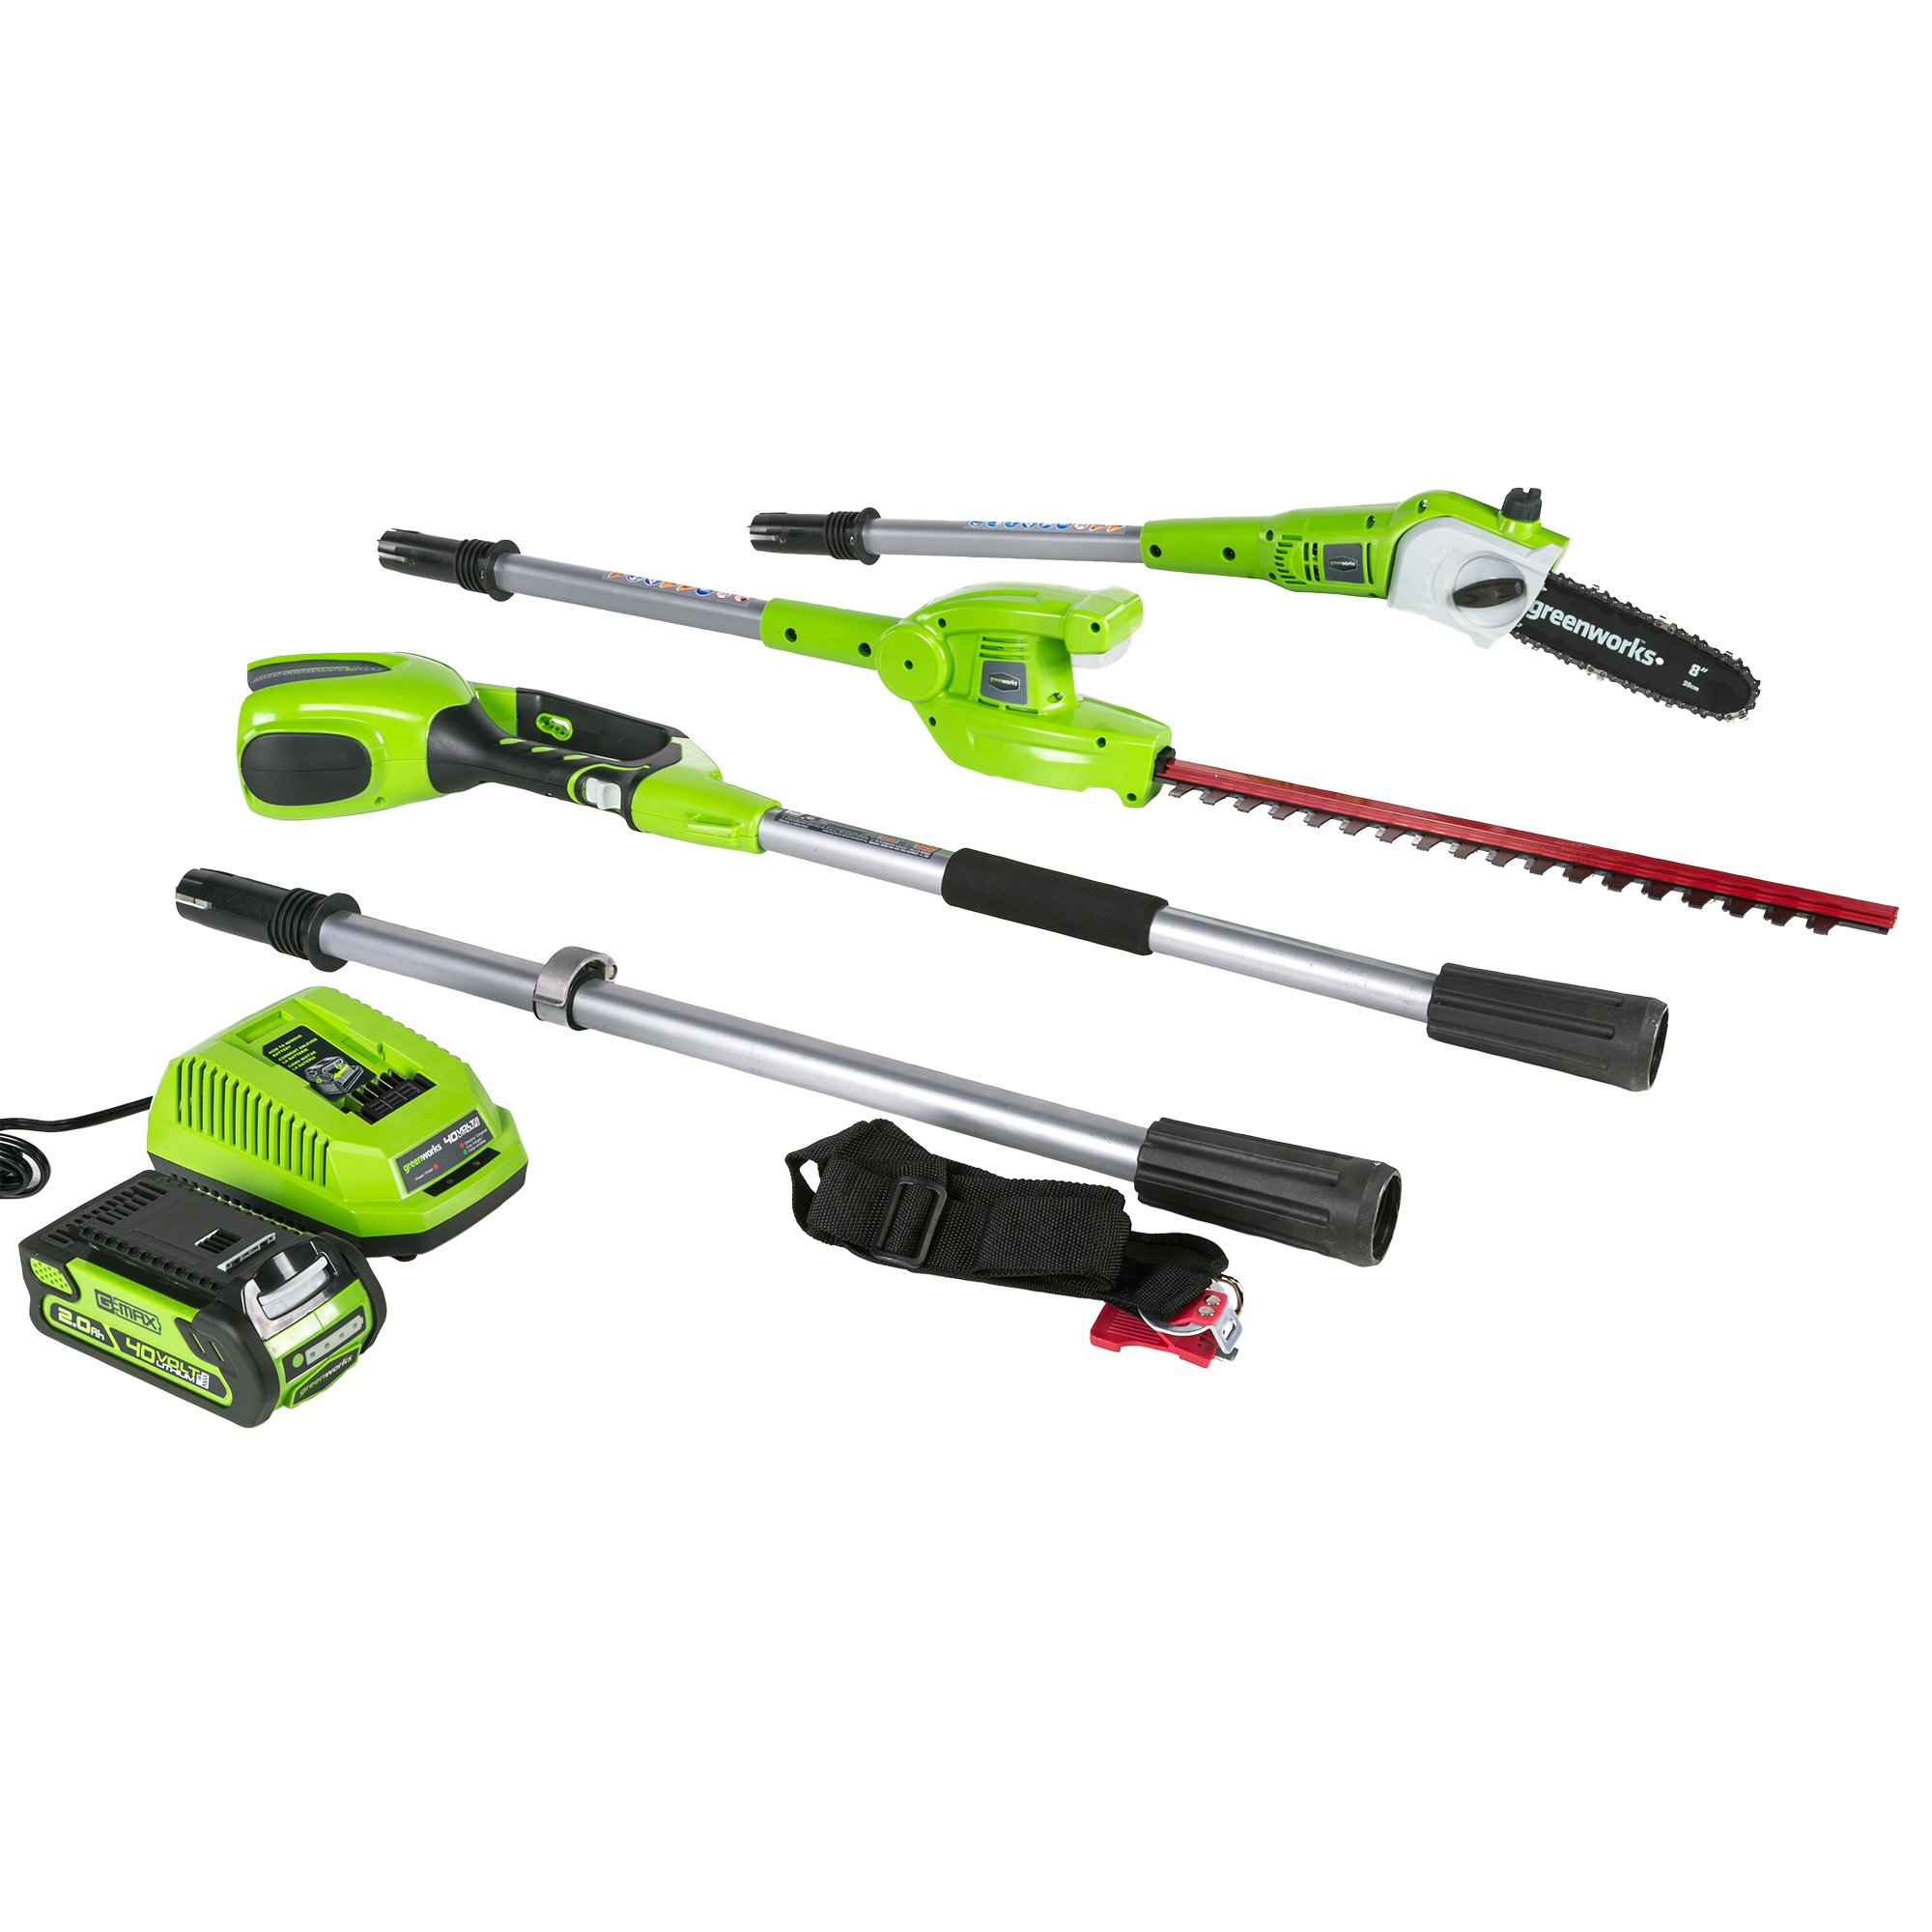 Greenworks 20-Inch 40V Cordless Pole Hedge Trimmer & 8-Inch Pole Saw Combo, 2.0 AH Battery Included PSPH40B210